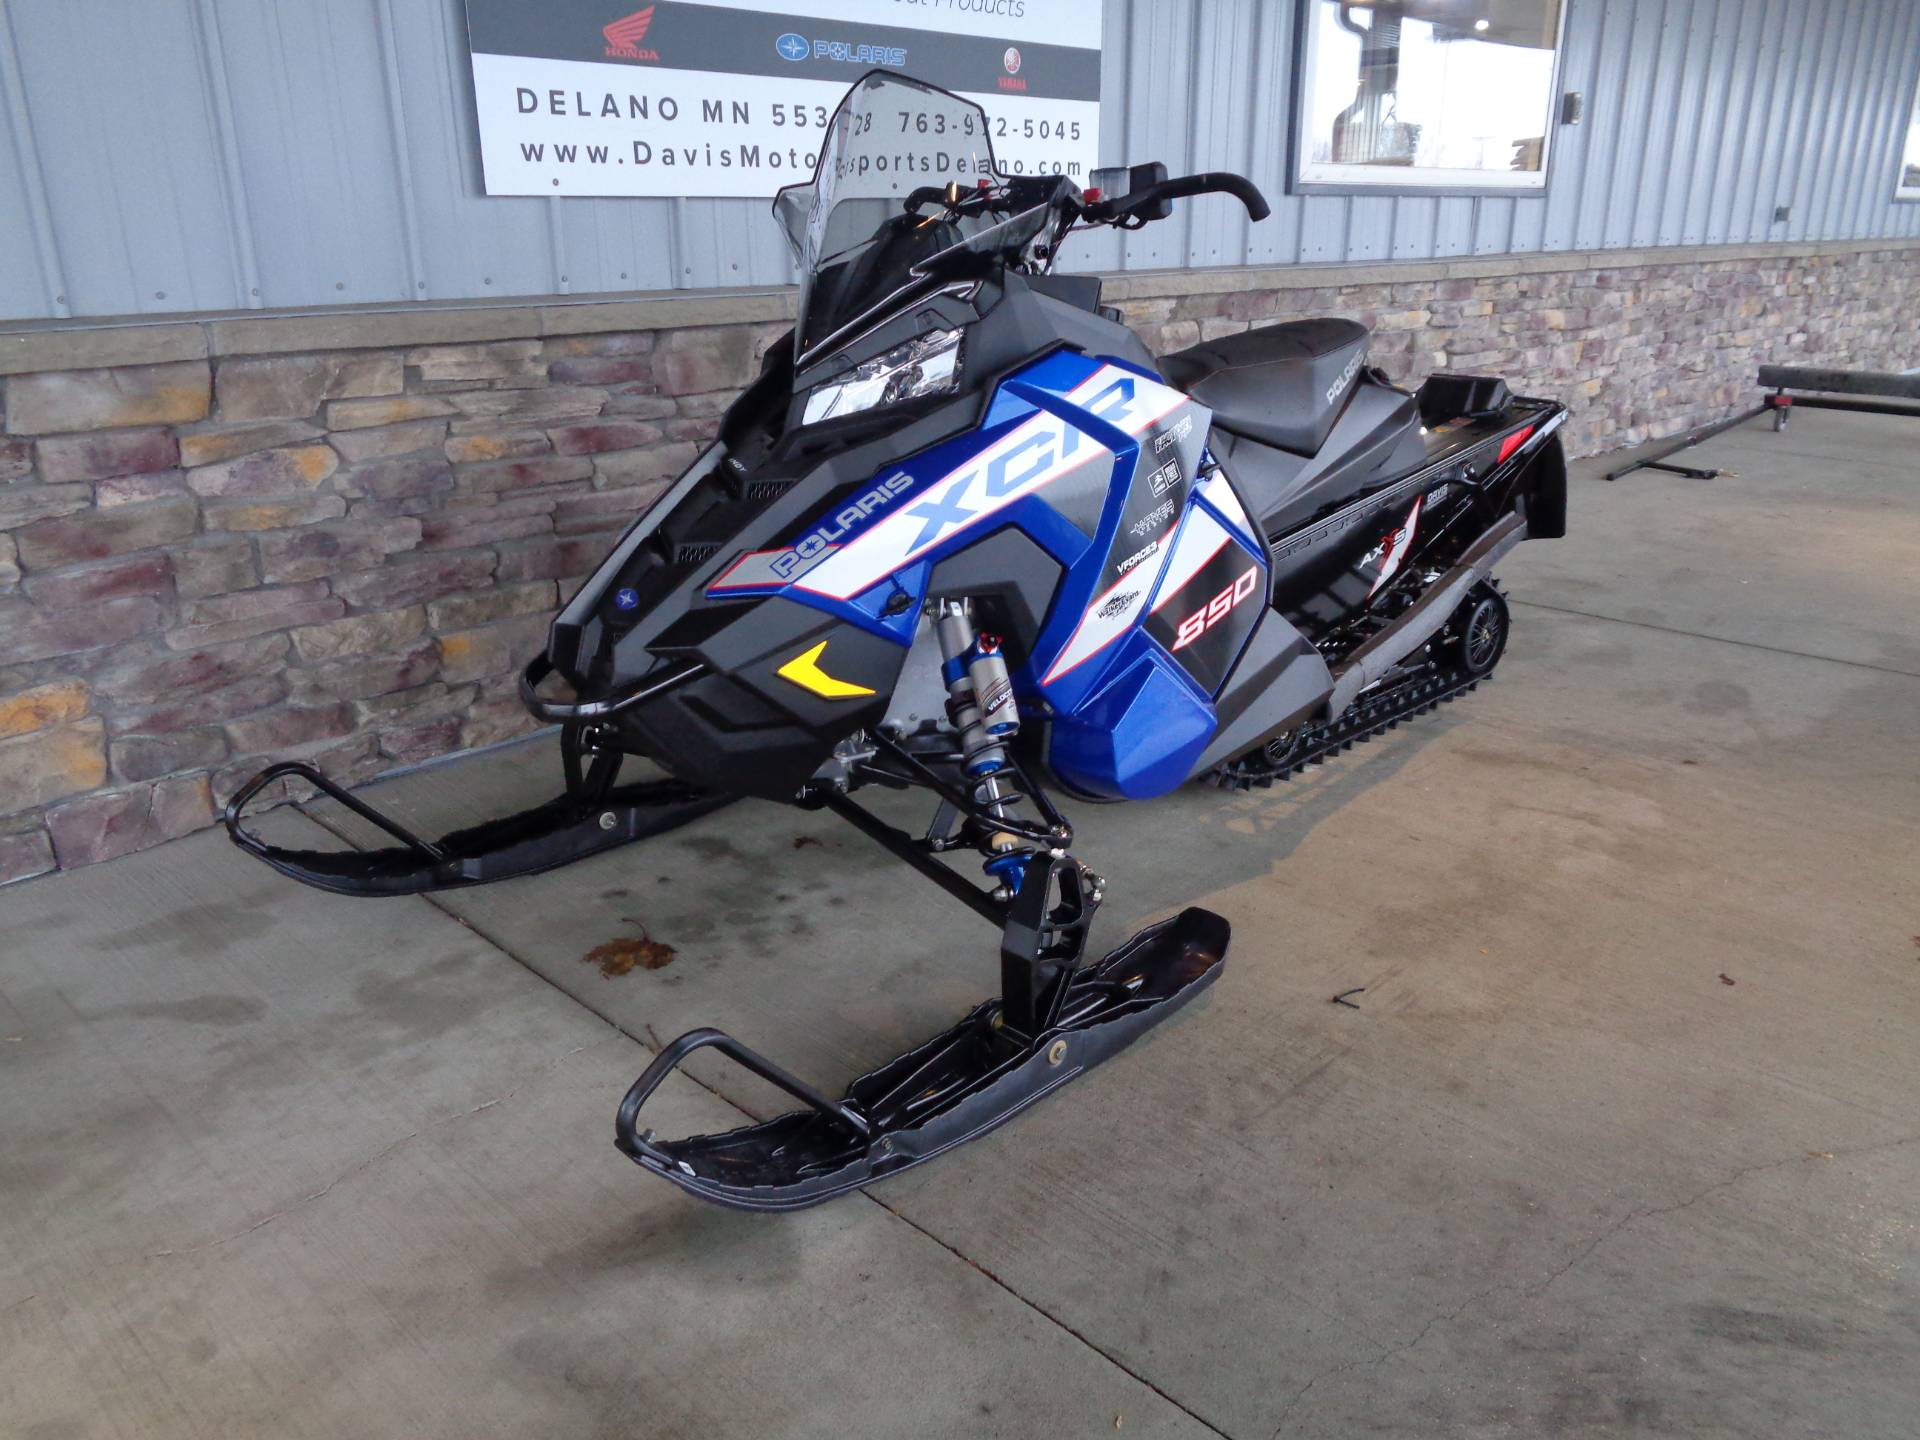 2021 Polaris 850 Indy XCR 129 Factory Choice in Delano, Minnesota - Photo 4